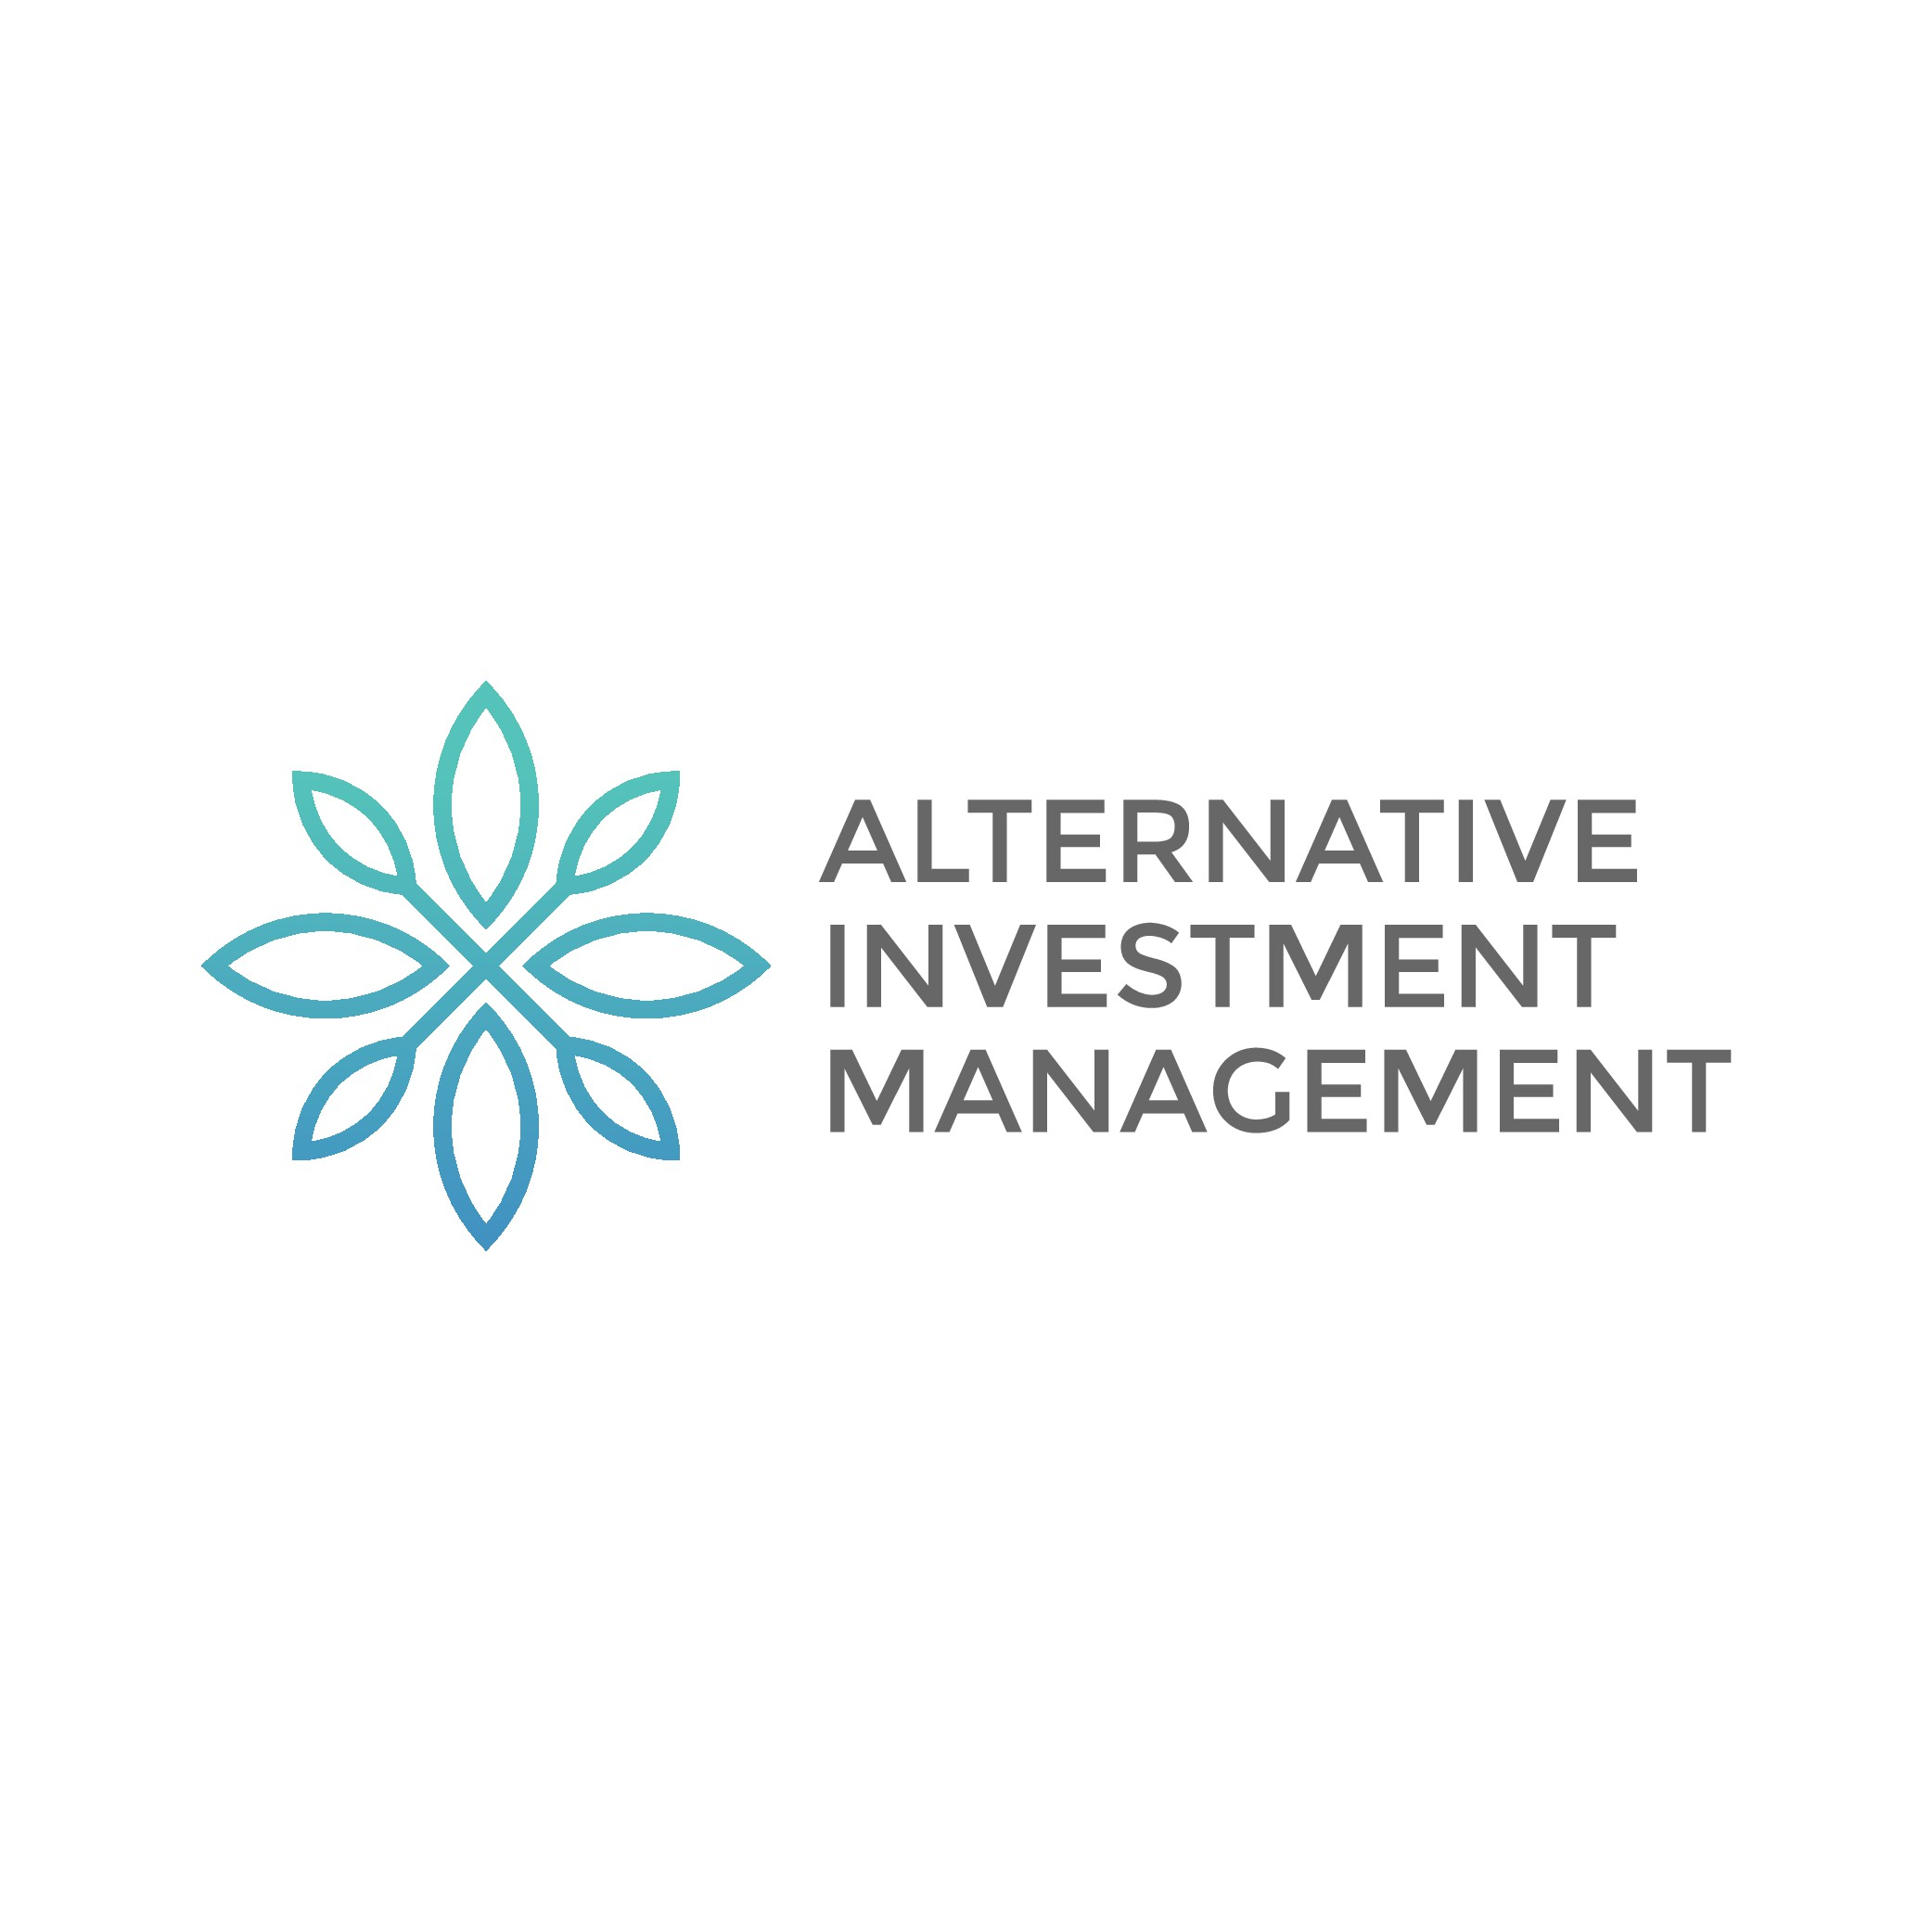 Modern funds management company logo and branding